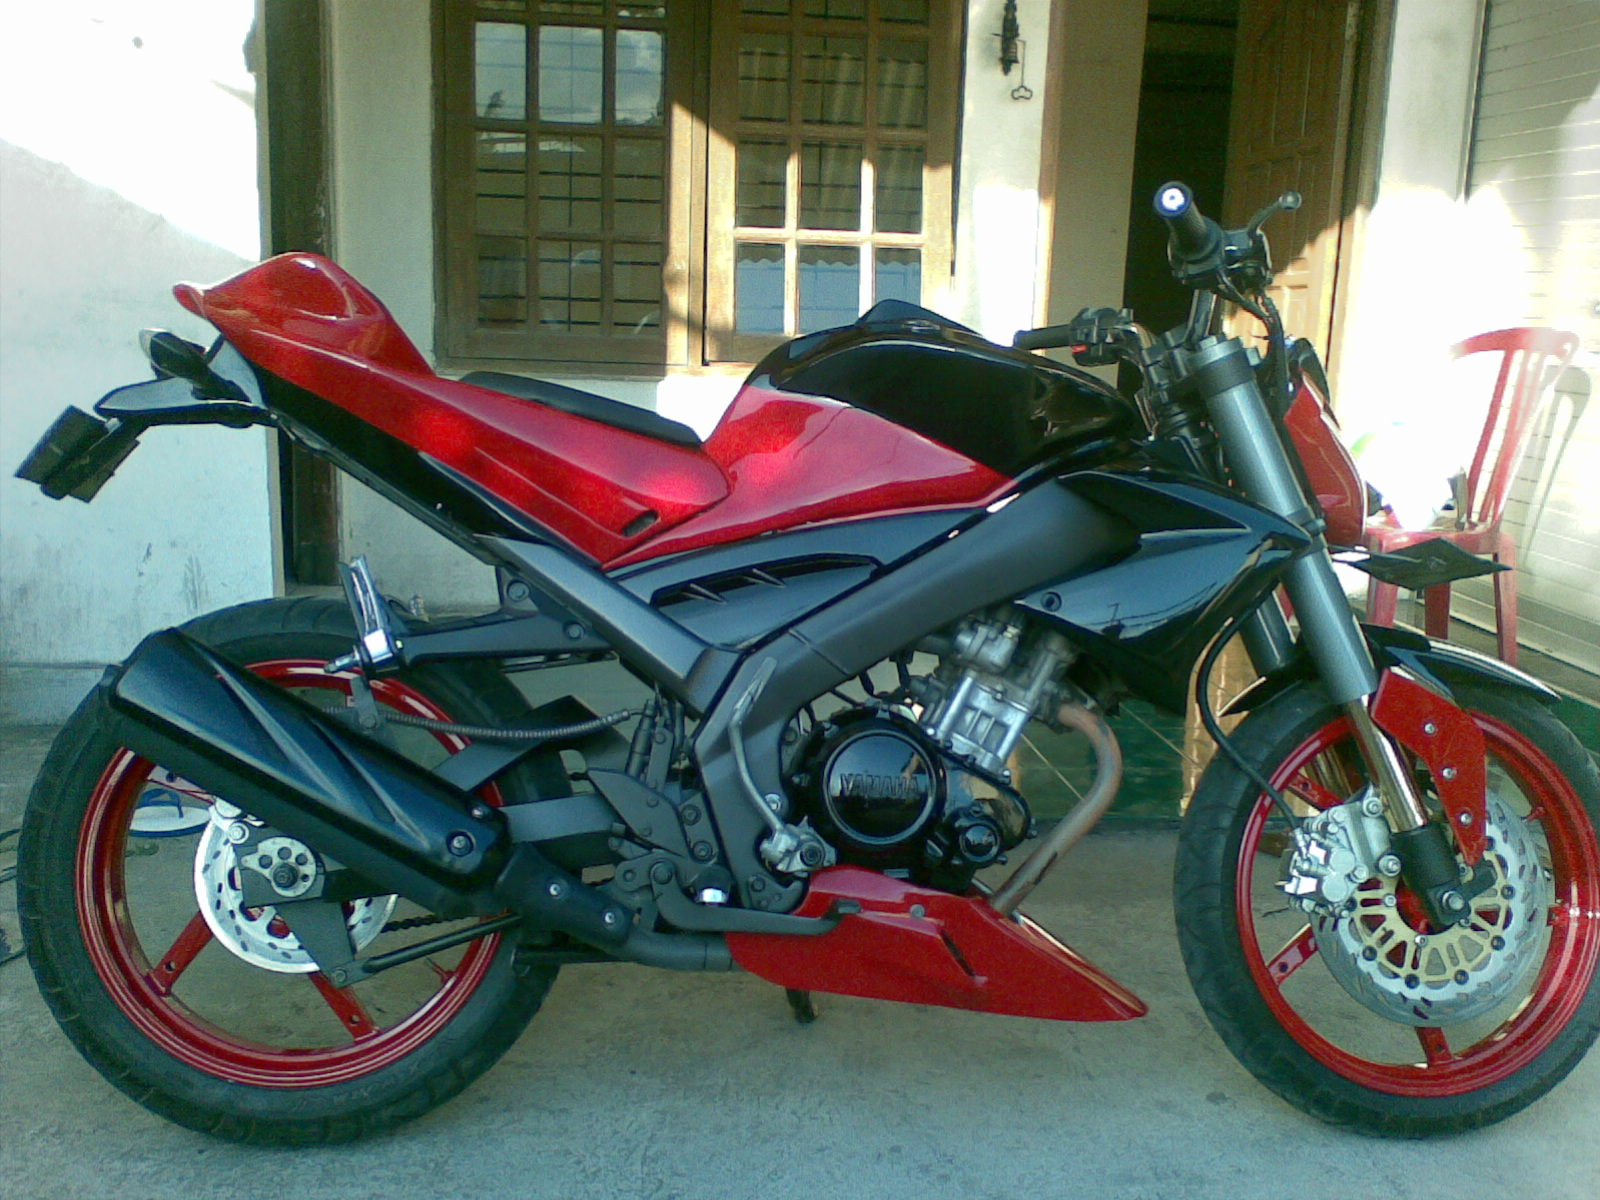 BODY STREET FIGHTER VIXION BY AND title=